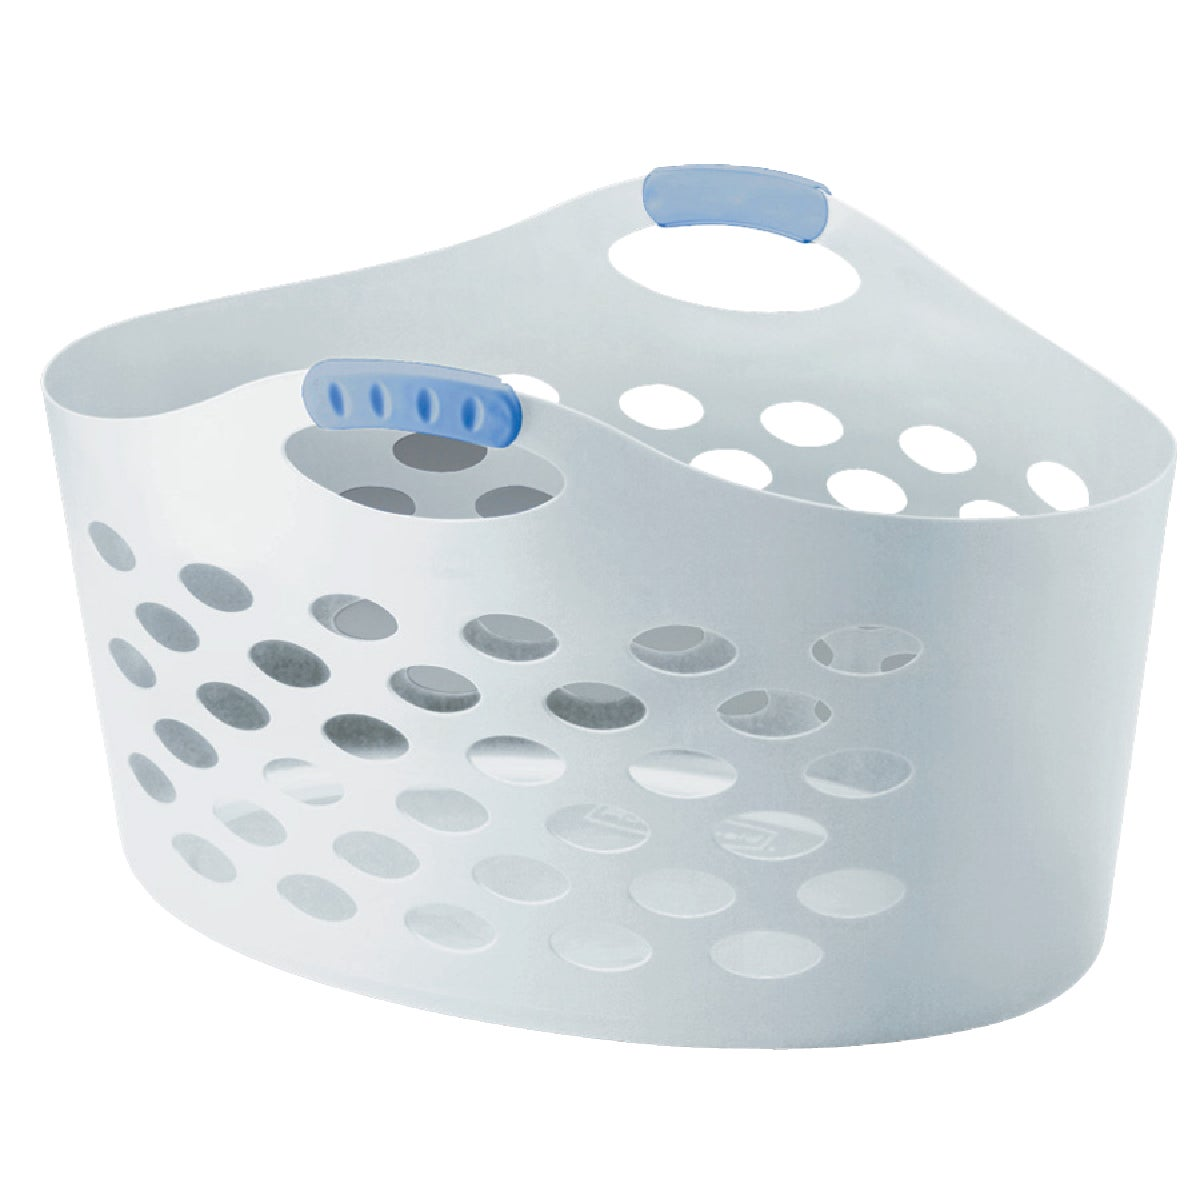 WHITE LAUNDRY BASKET - 260100-WHT by Rubbermaid Home